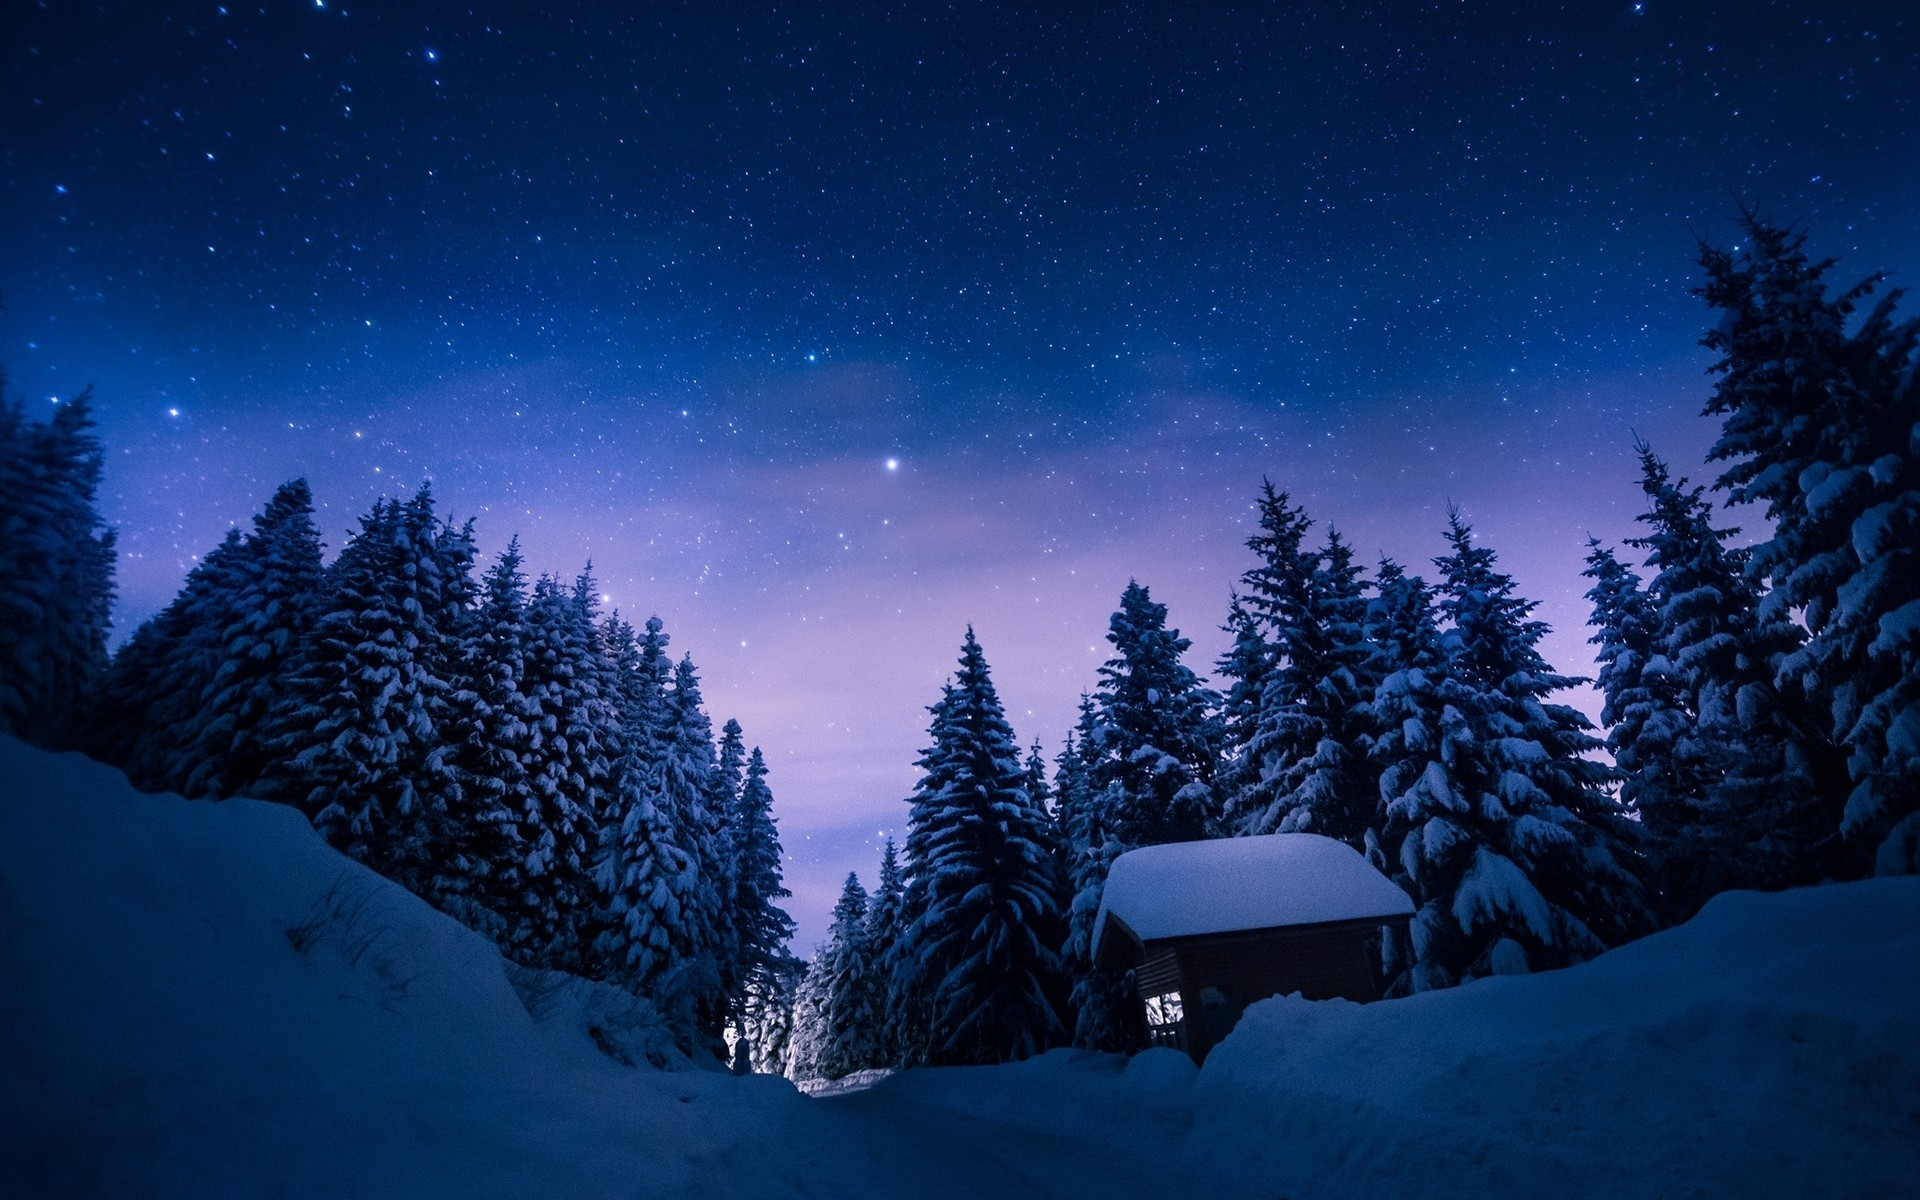 … scenes wallpapersafari; stary snowy night background clipart collection  …